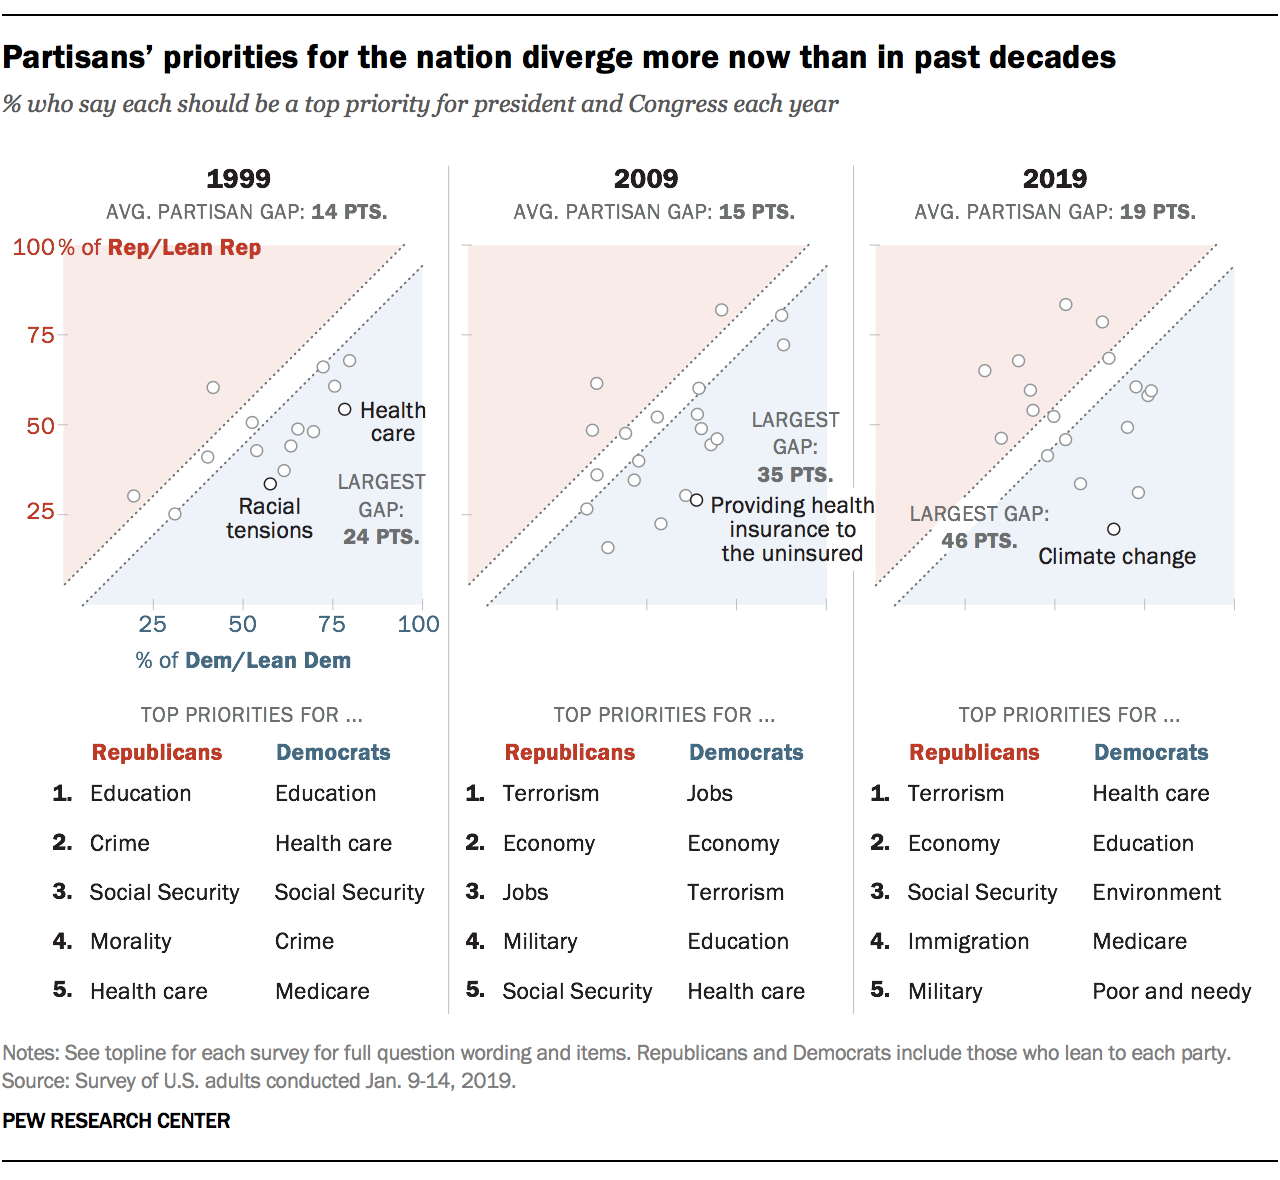 Partisans' priorities for the nation diverge more now than in past decades